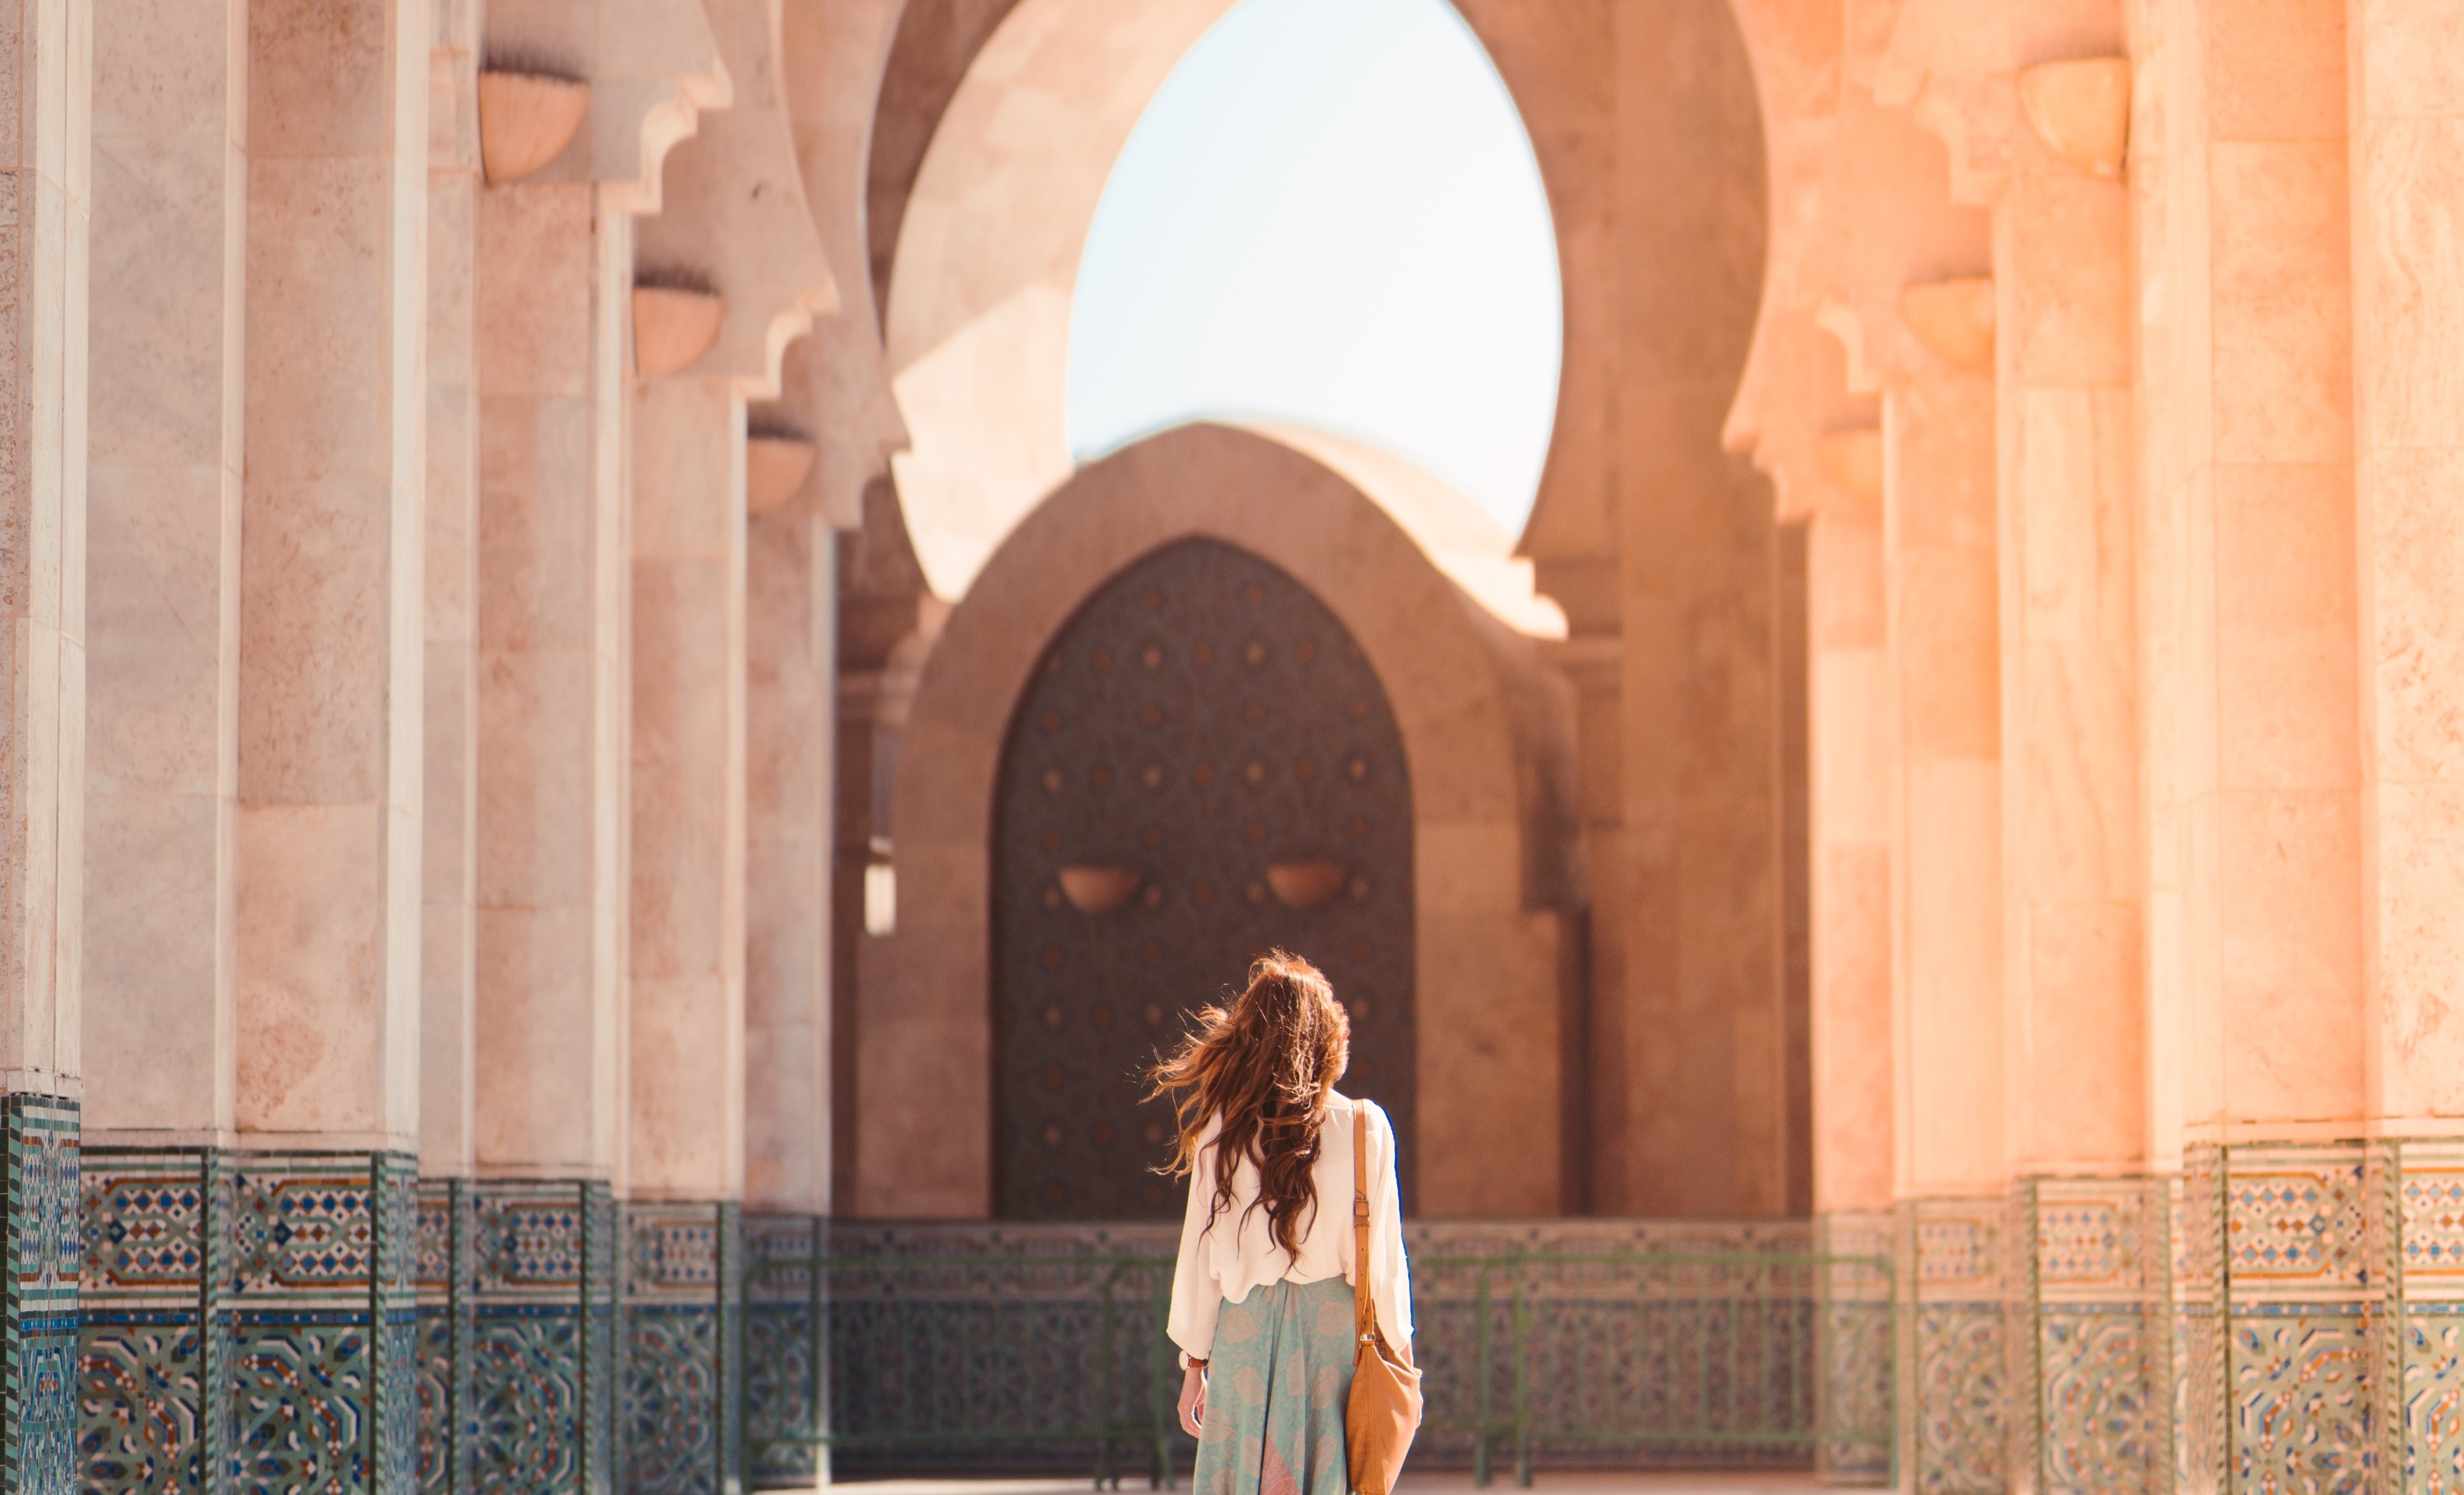 Can I just move to Morocco?